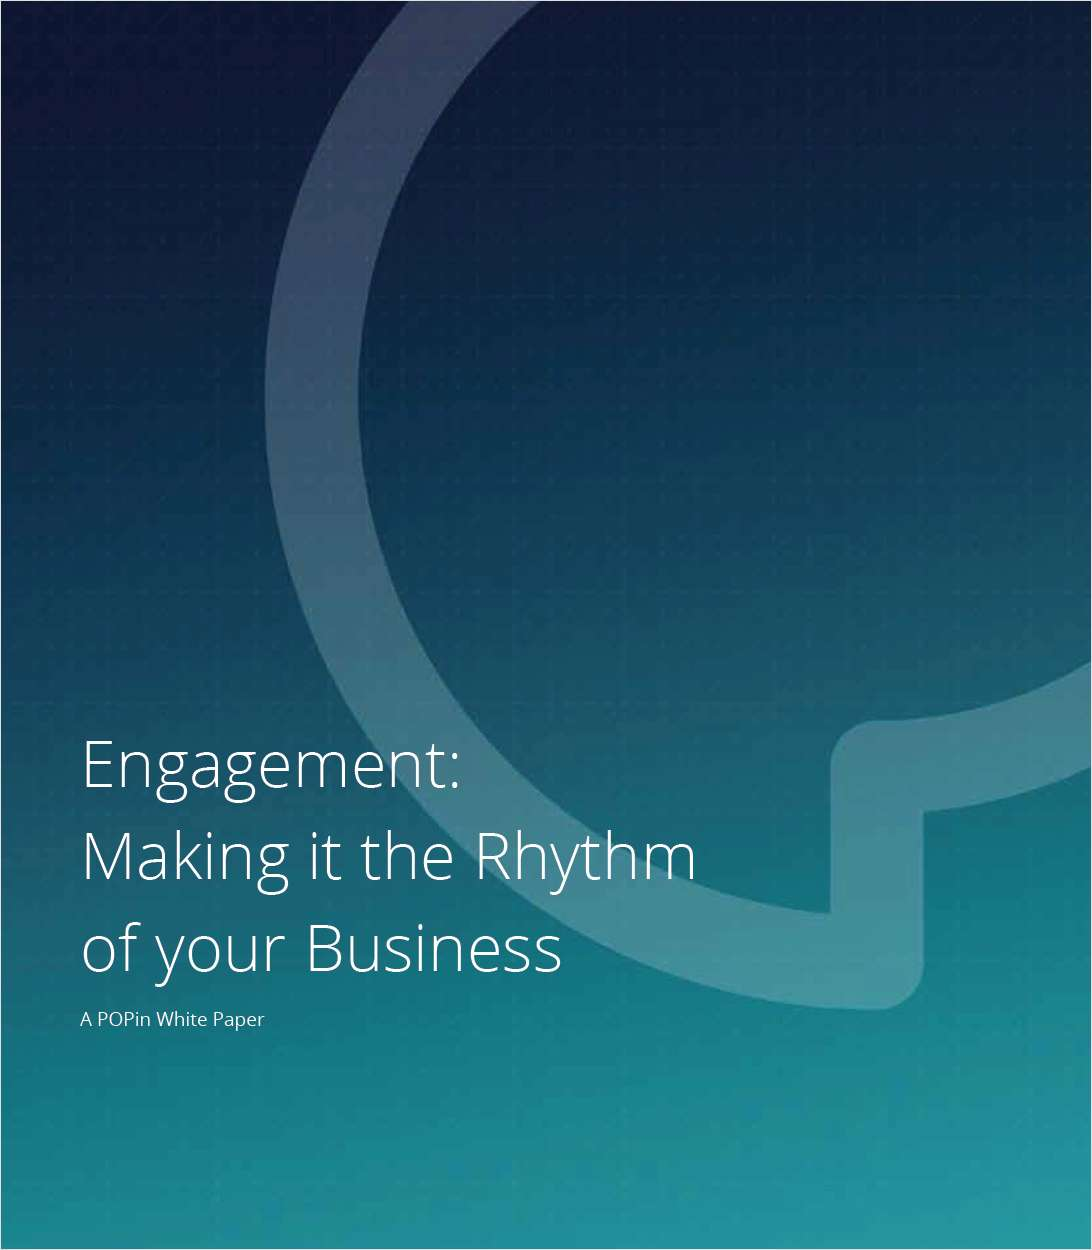 How to Make Engagement Part of Your Culture